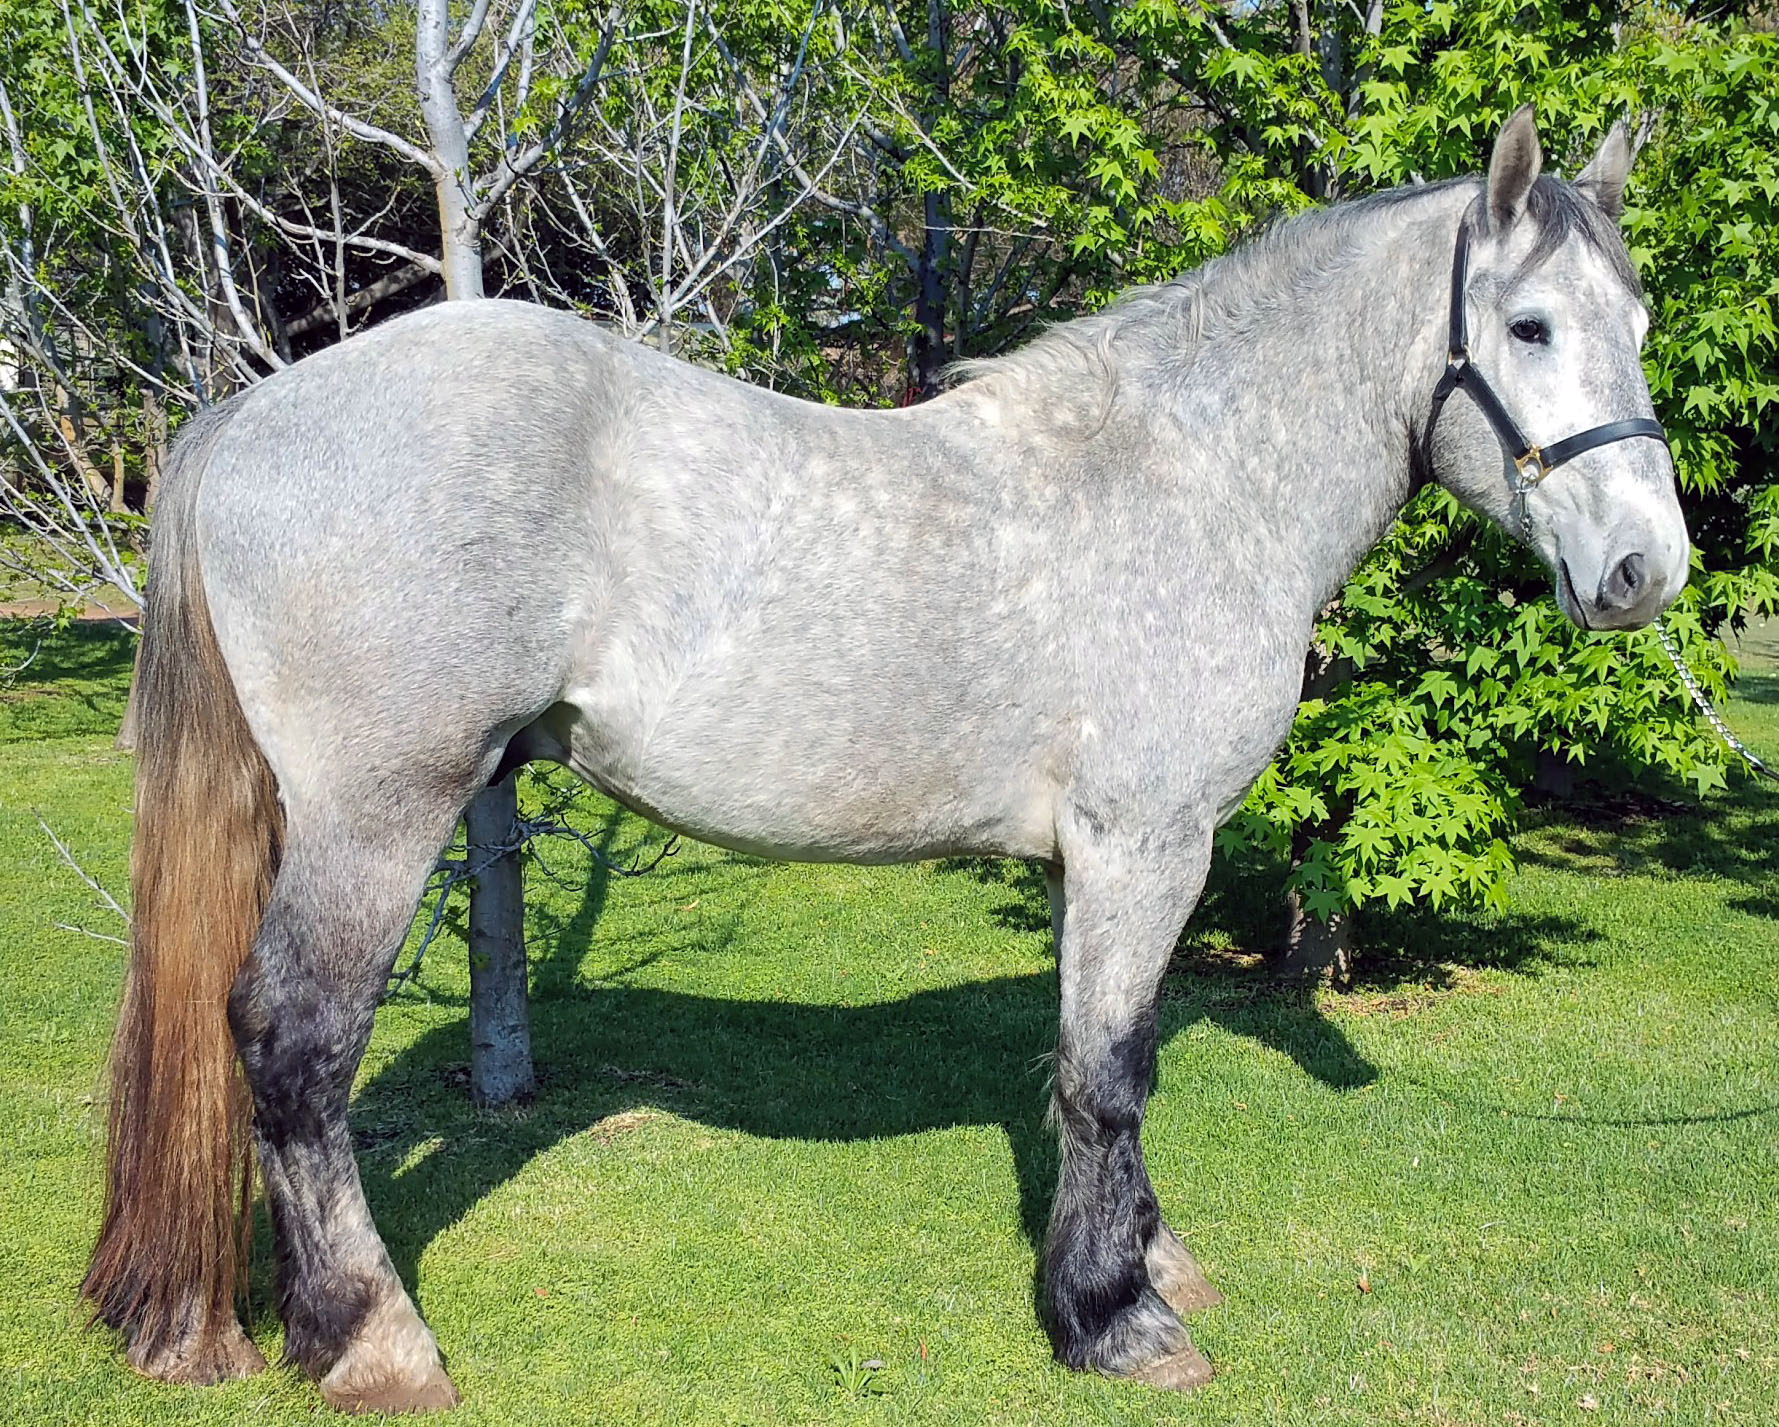 Summerwind Serengeti - Registered 3 year old gelding for sale